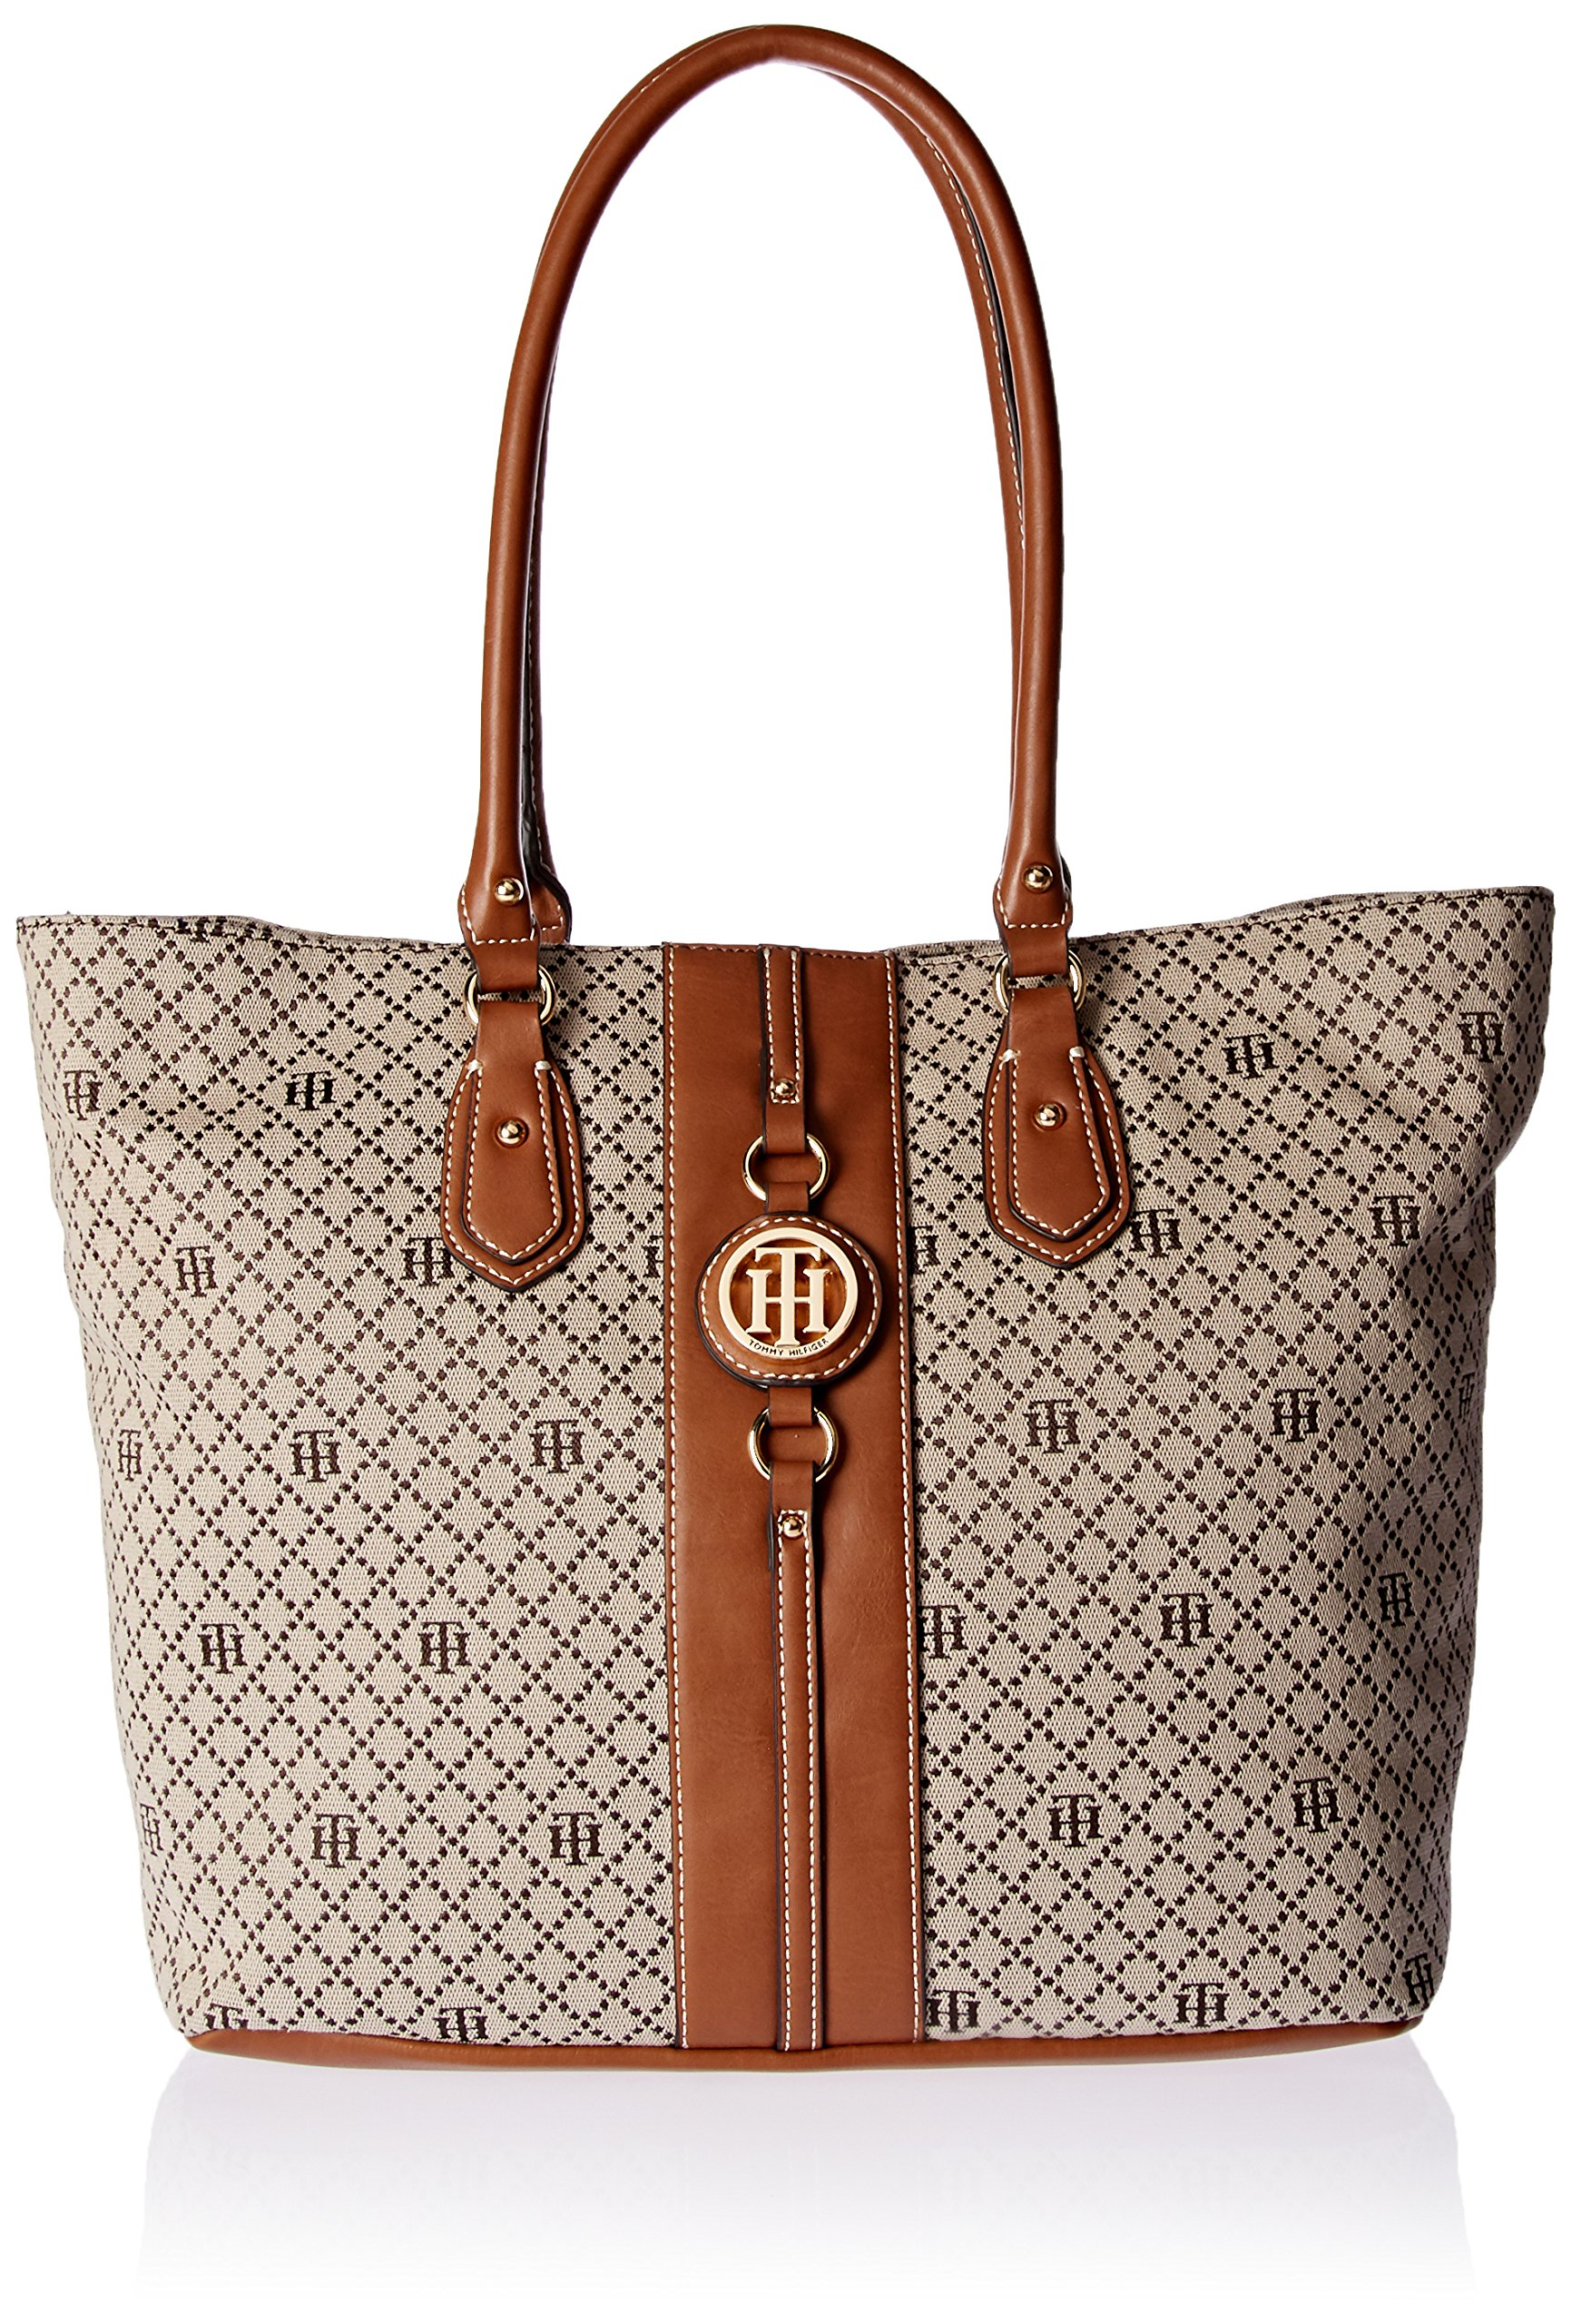 Tommy Hilfiger Travel Tote Bag for Women Jaden, Navy Natural, Tan Diamond by Tommy Hilfiger